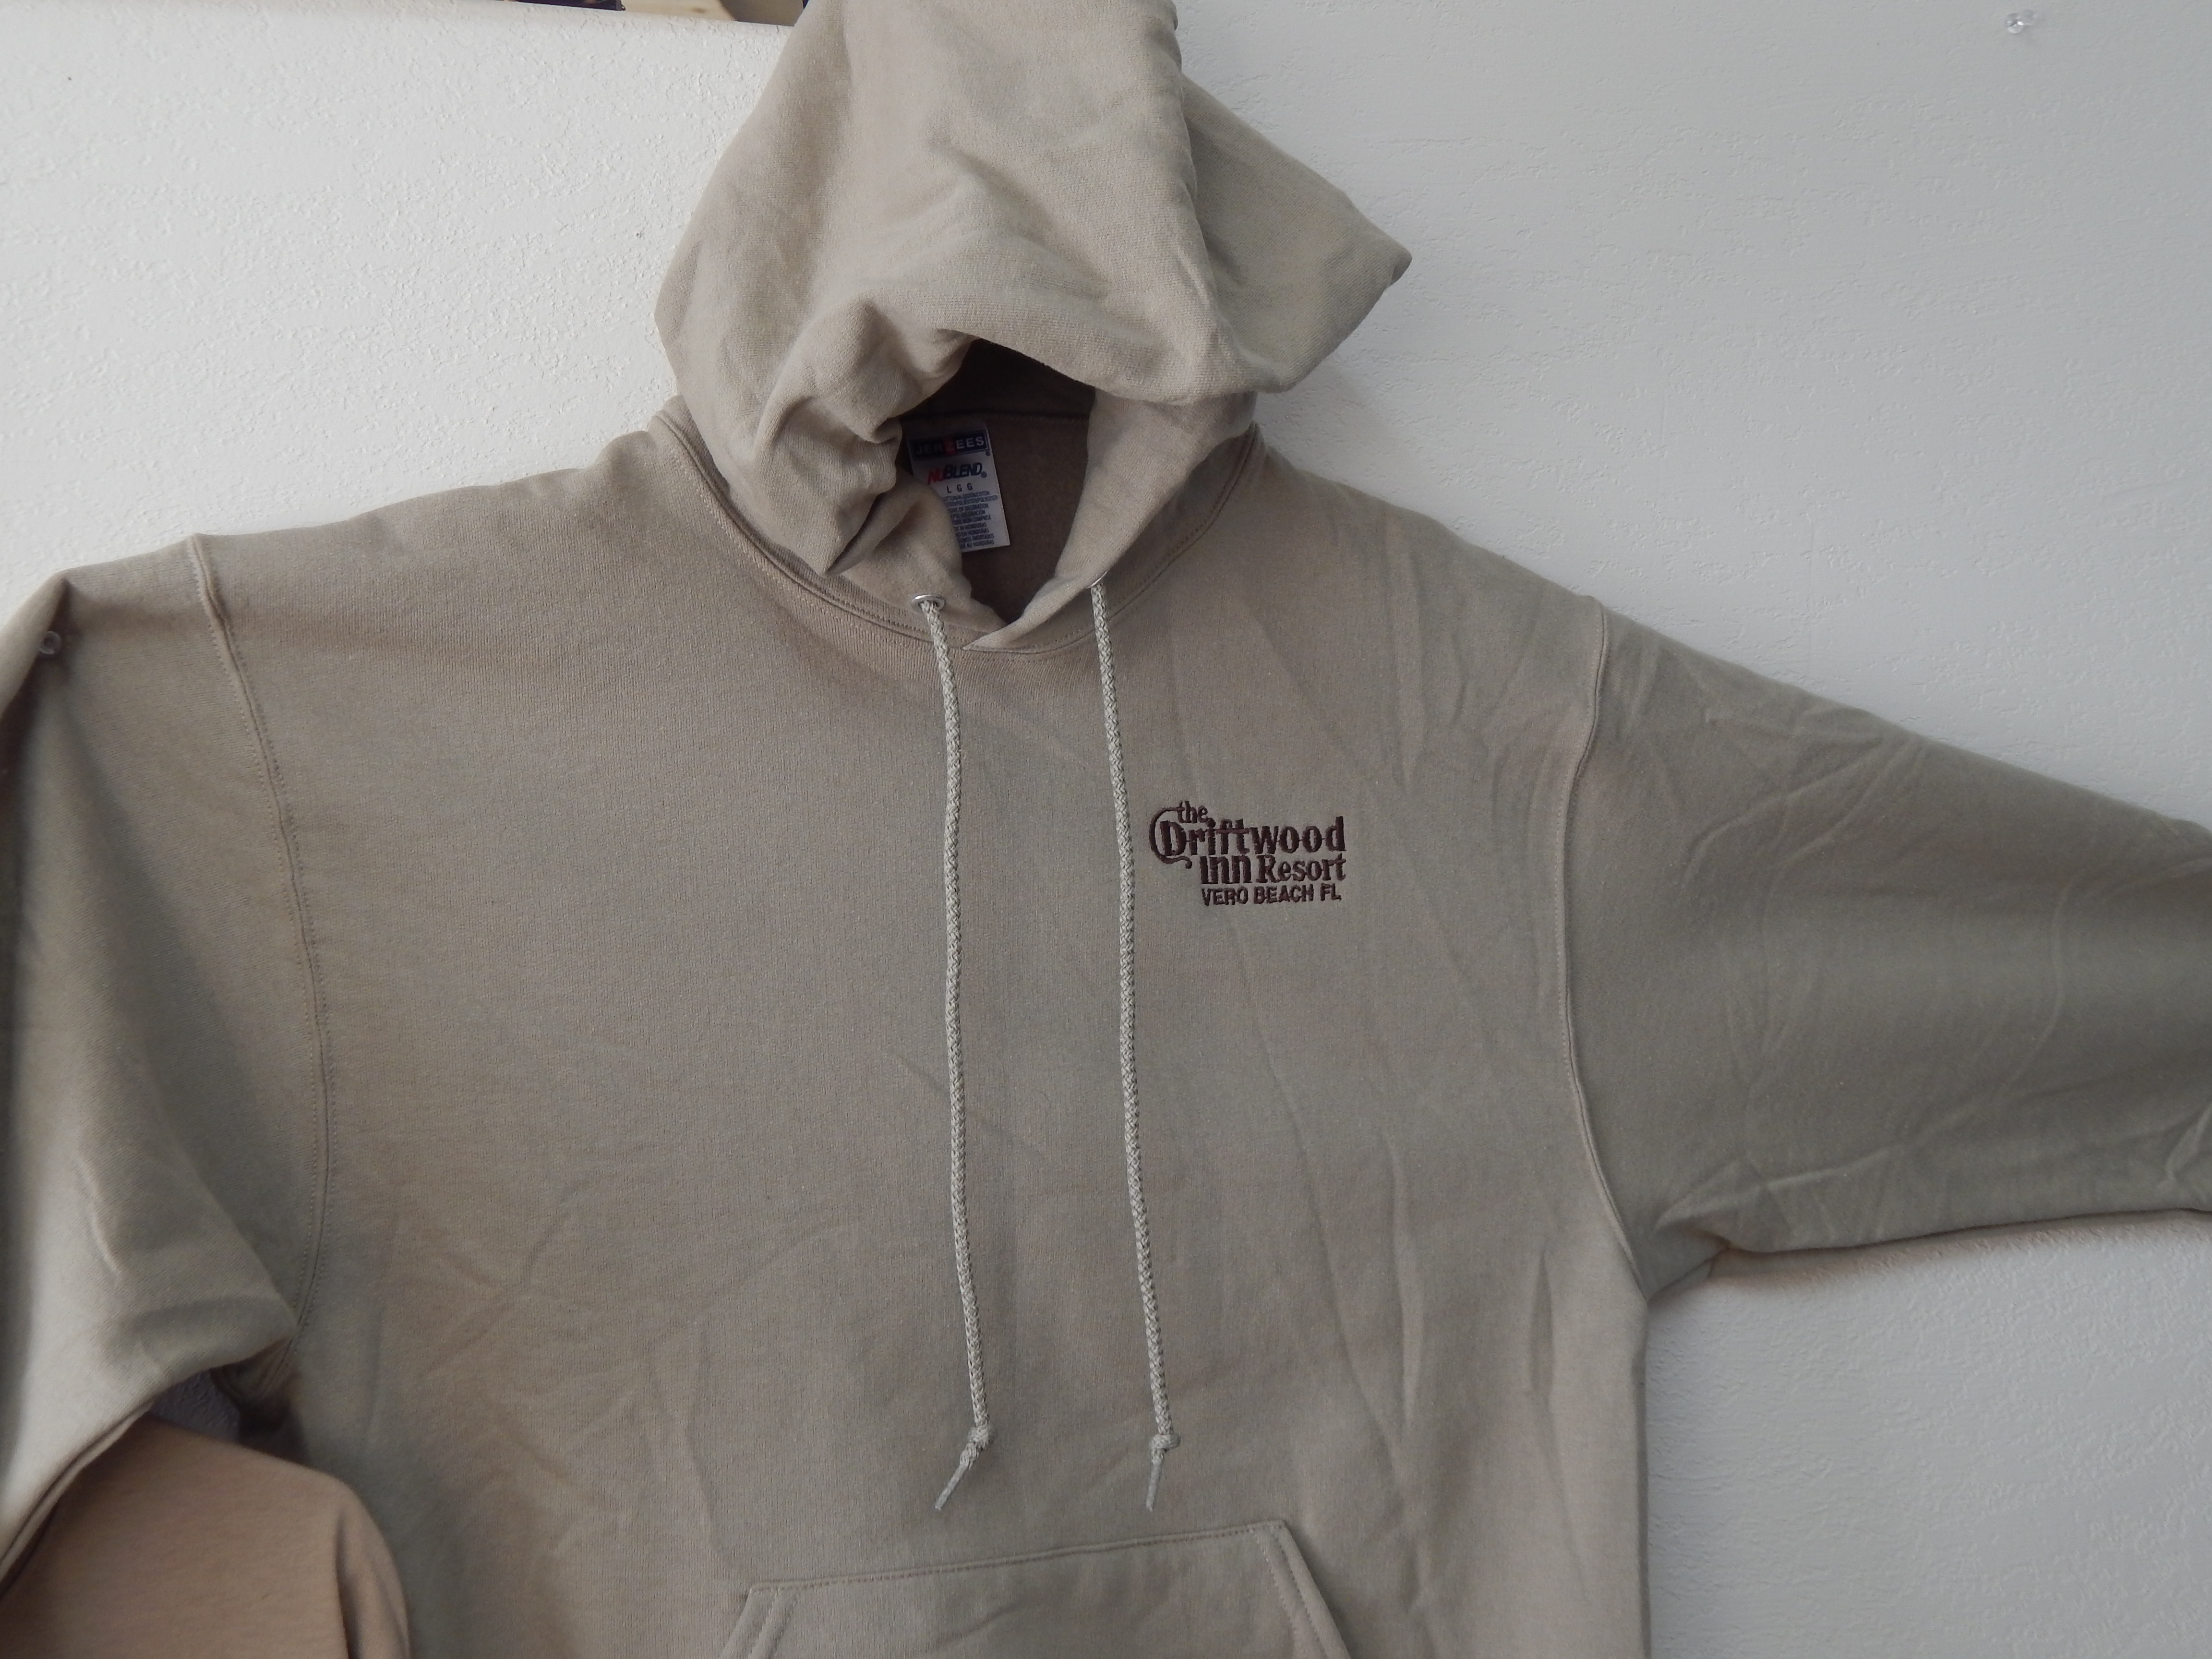 e2107d2d98c4c Driftwood Embroidered Hoodie - Treasure Coast Embroidery